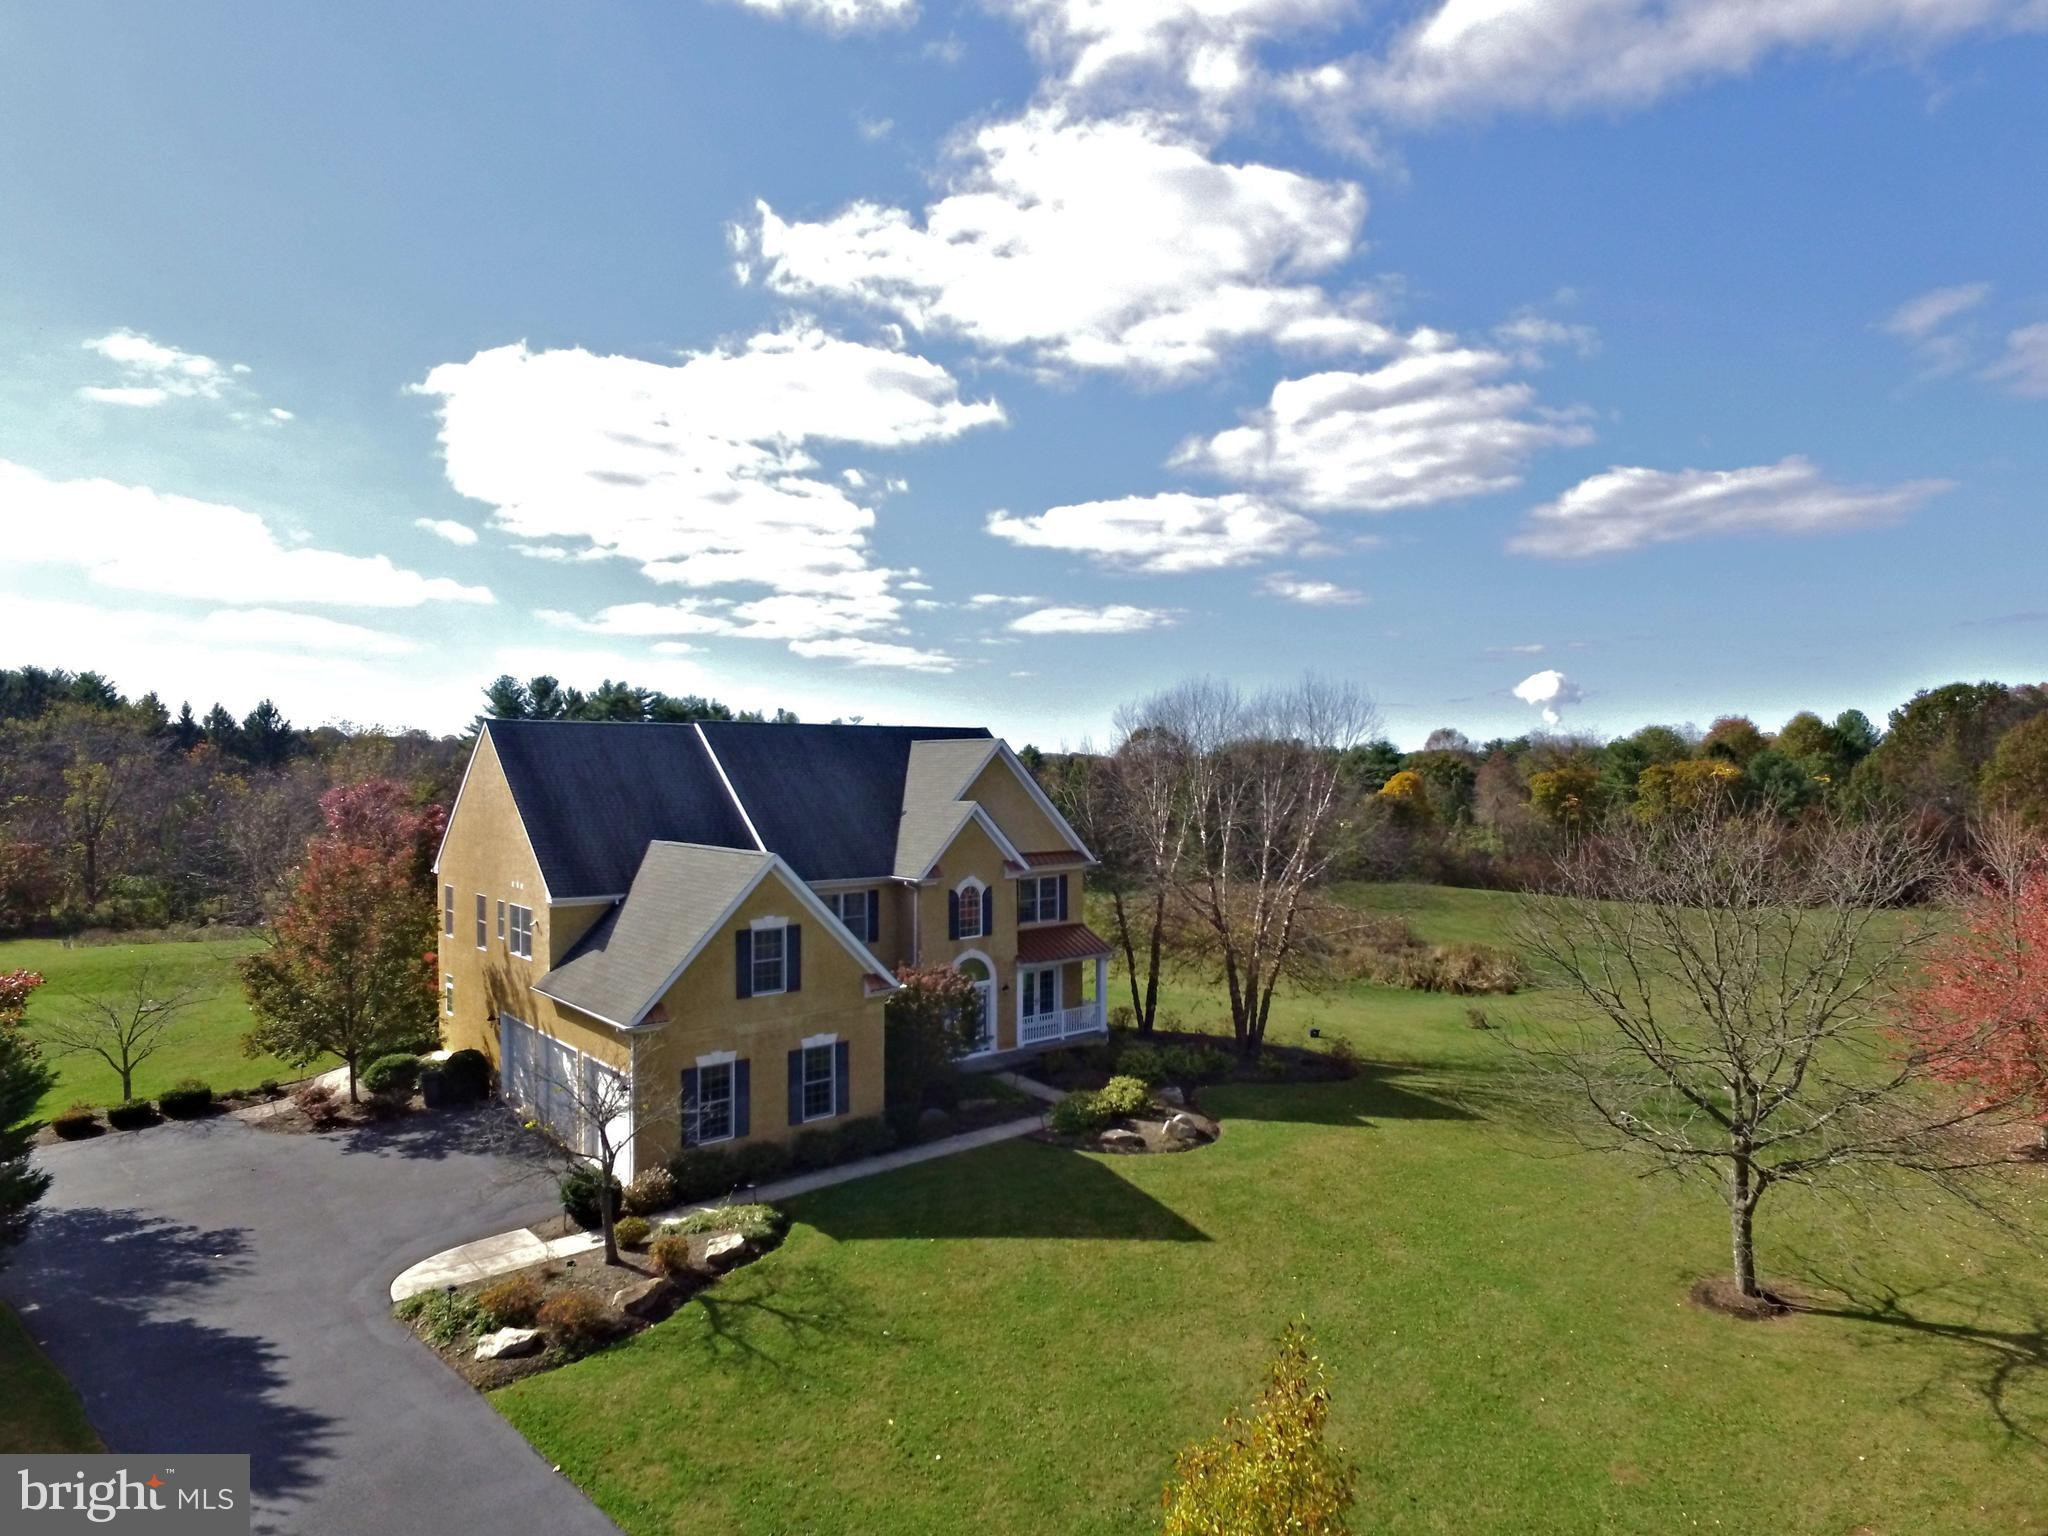 3280 HEDWIG LANE, COLLEGEVILLE, PA 19426